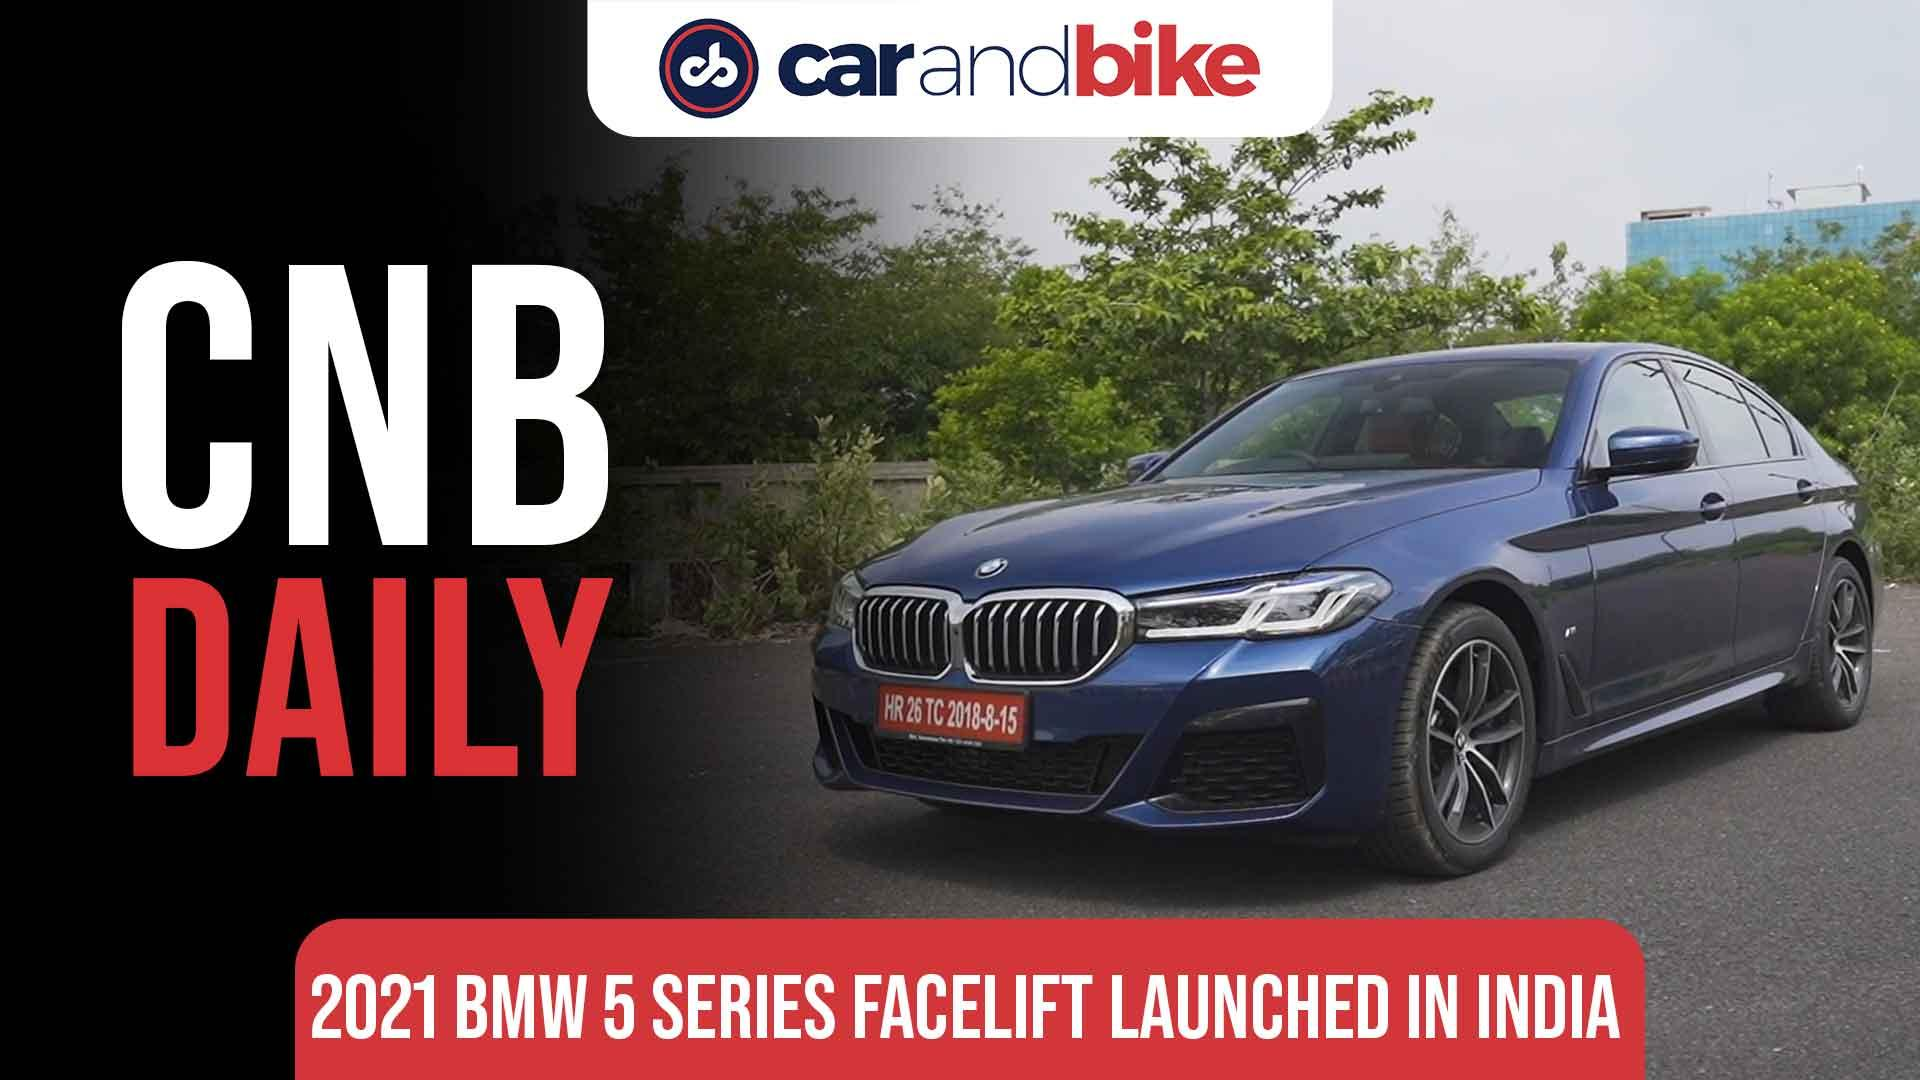 2021 BMW 5 Series Facelift Launched In India